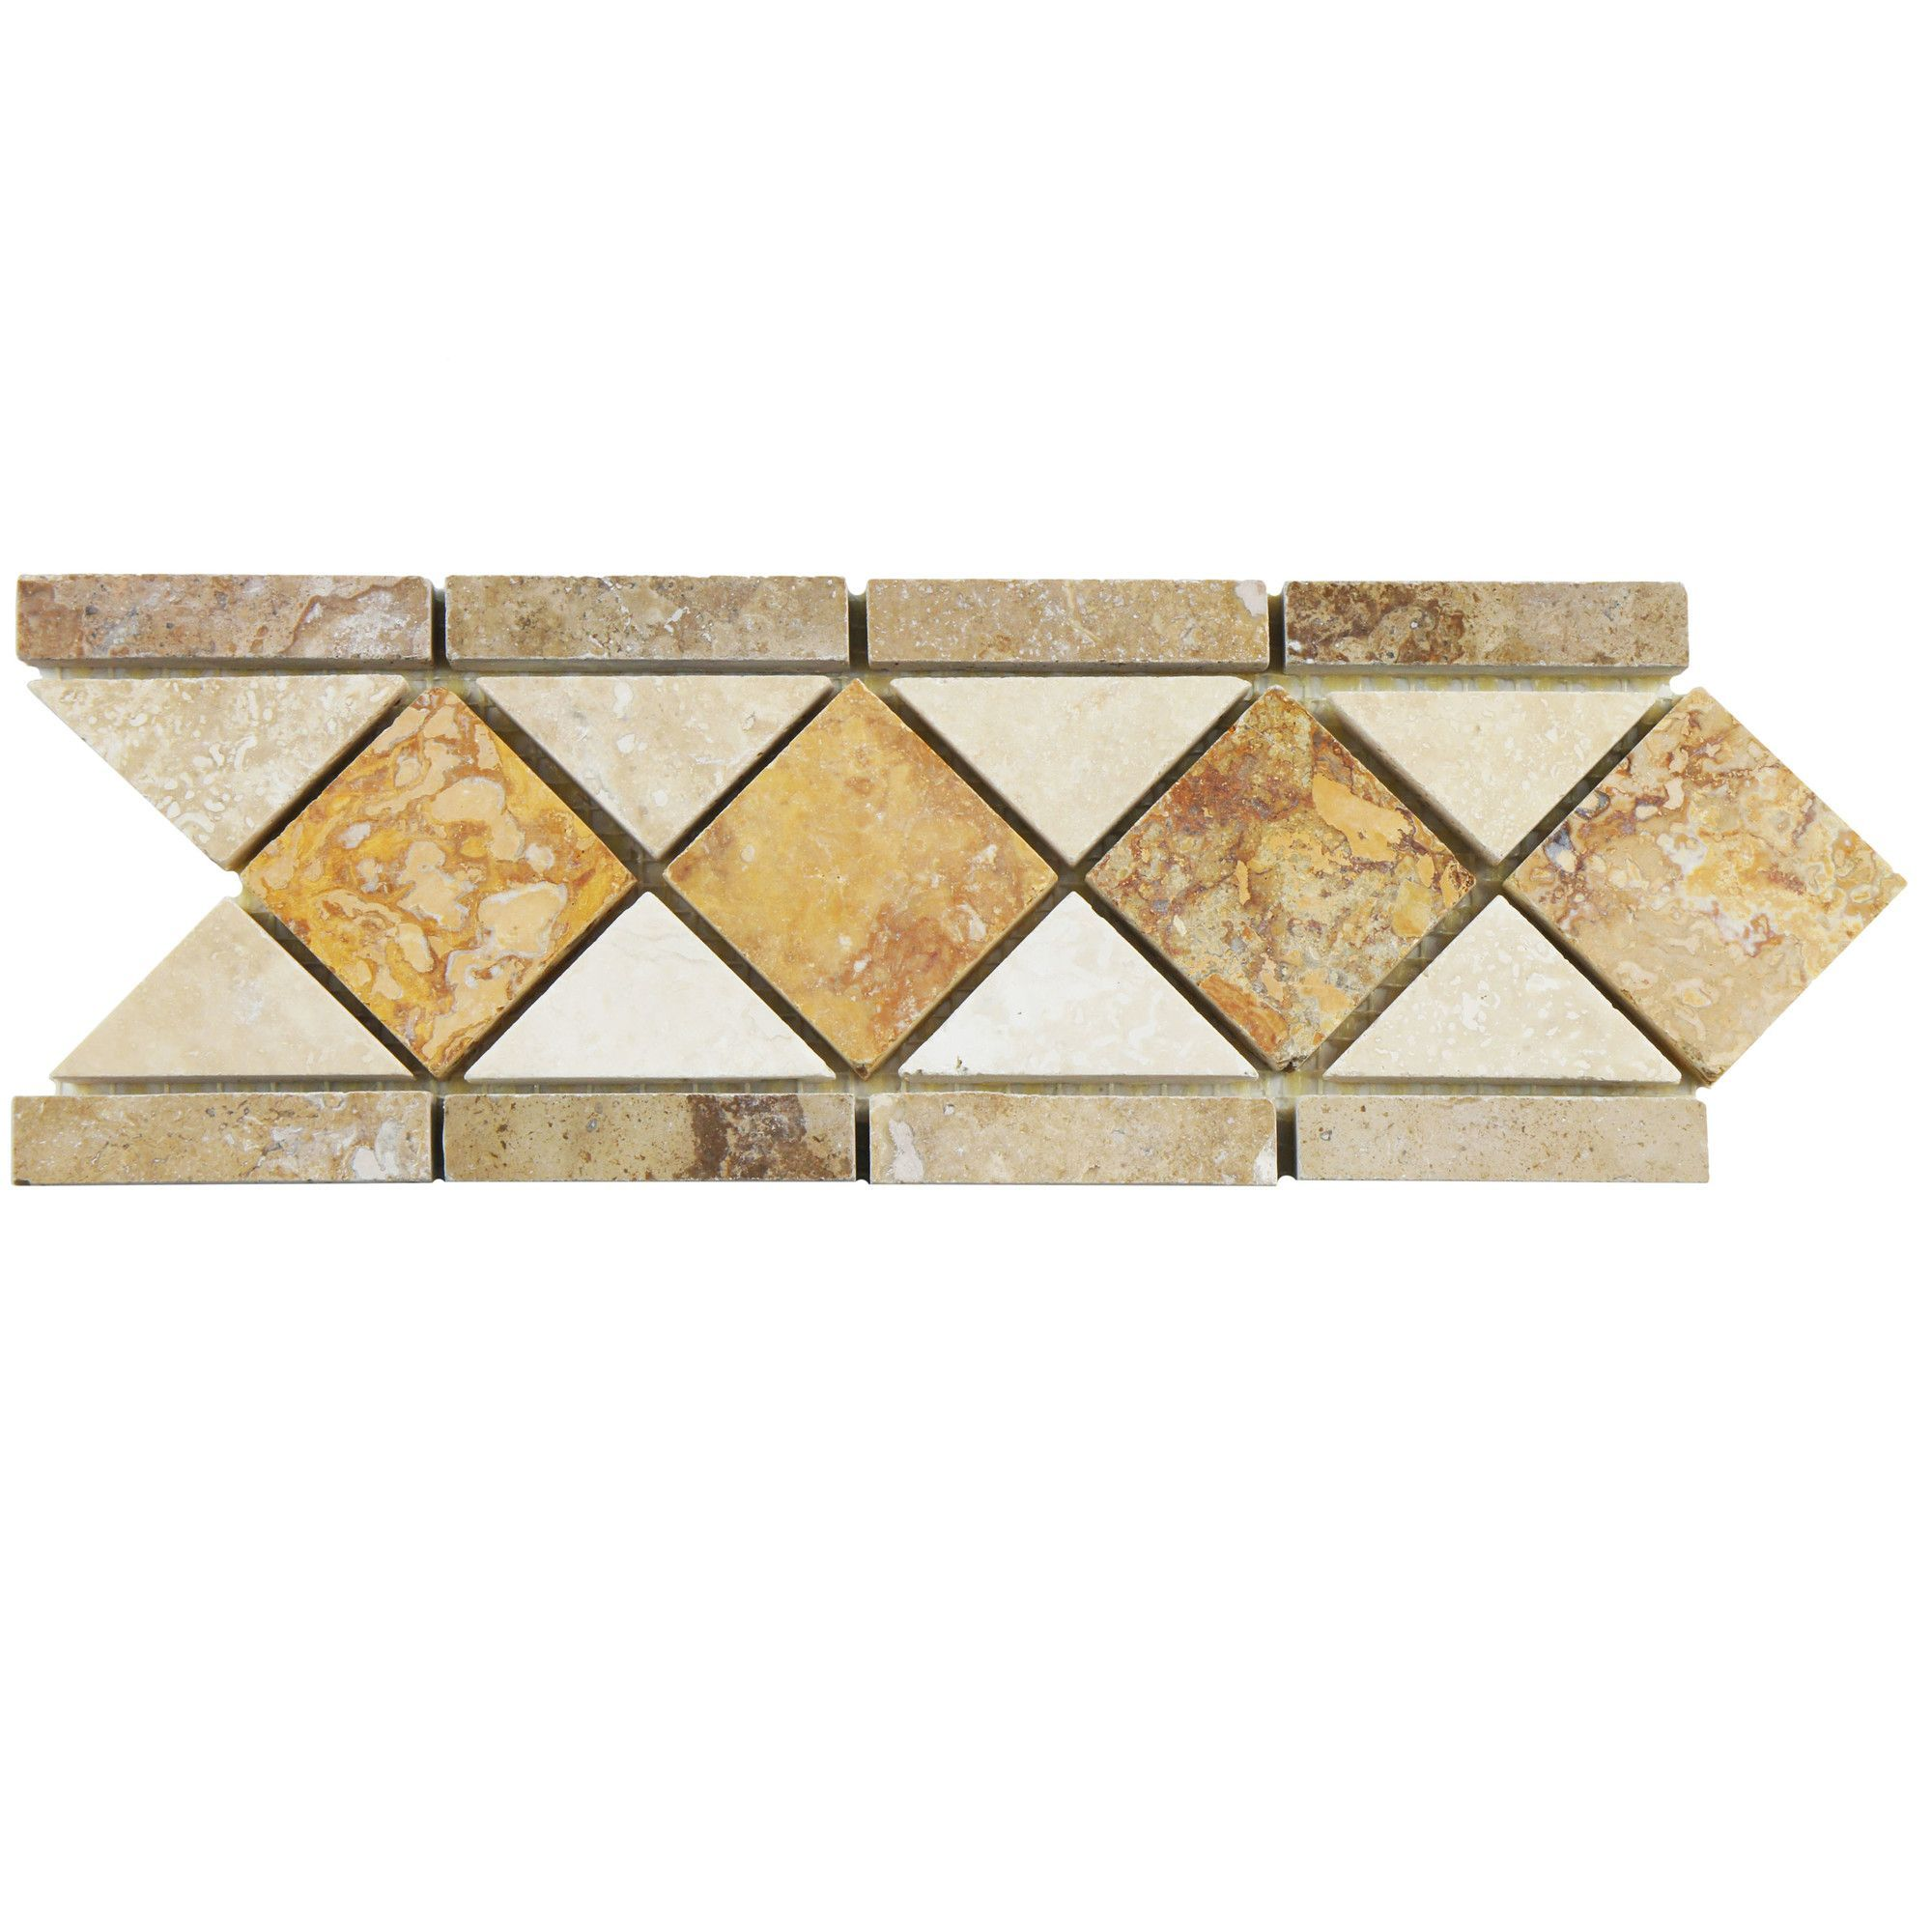 Elitetile Boutin 12 5 X 4 Travertine Border Tile Trim In Noce